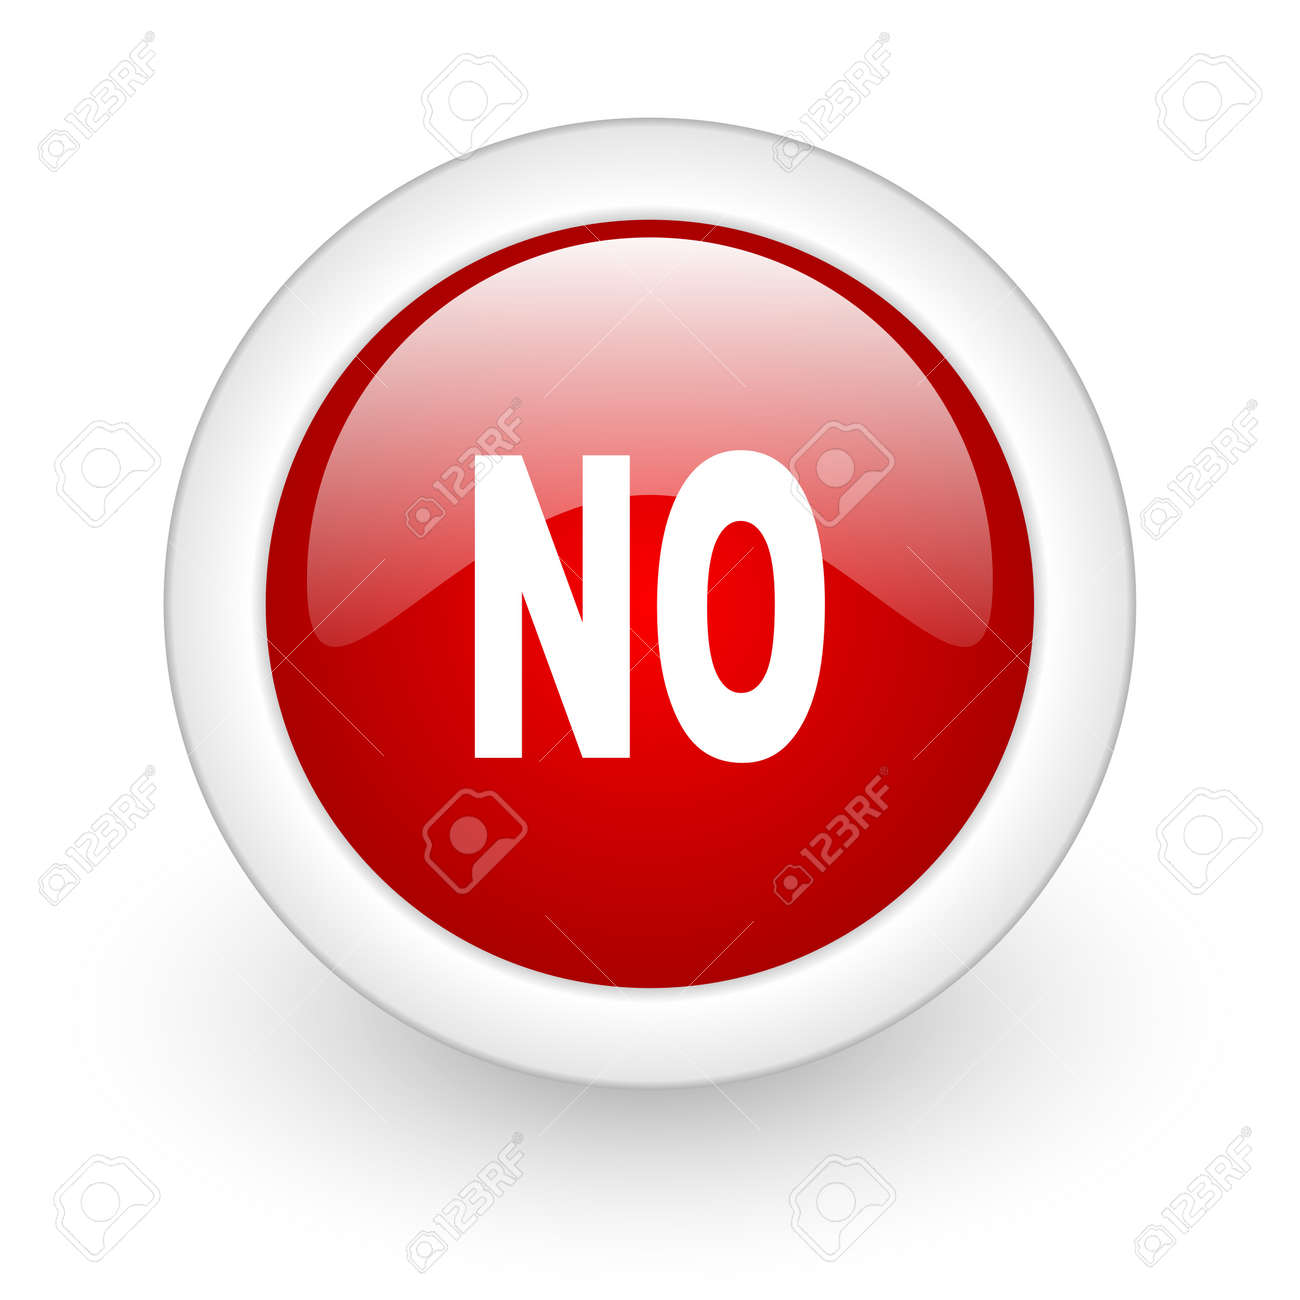 no red circle glossy web icon on white background Stock Photo - 17977747